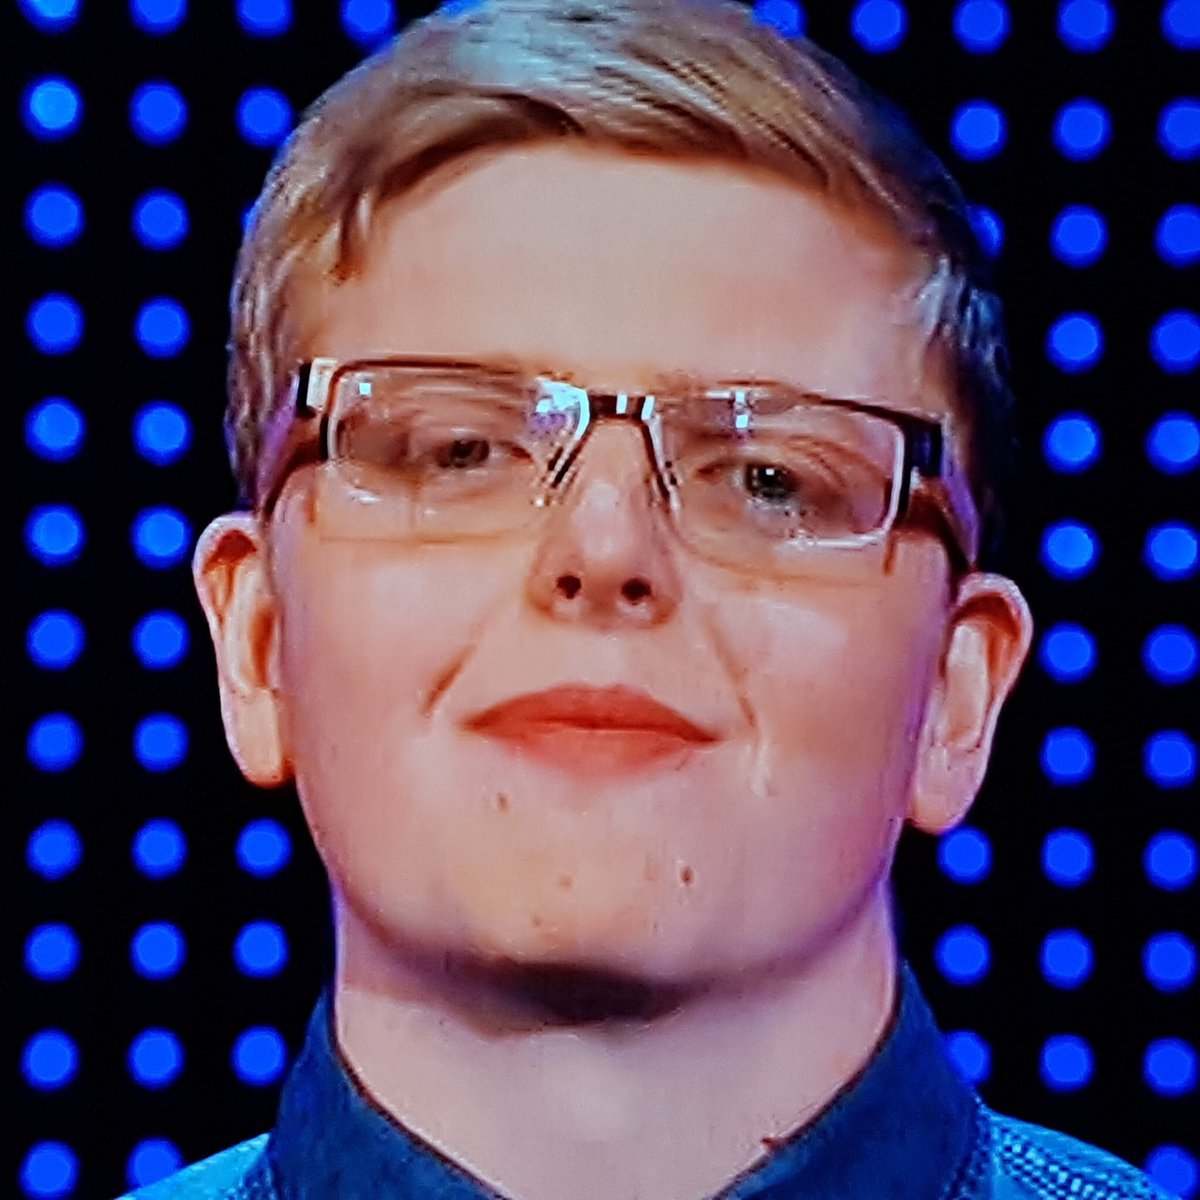 WANTED for daylight robbery #TheChase #JusticeForDarragh